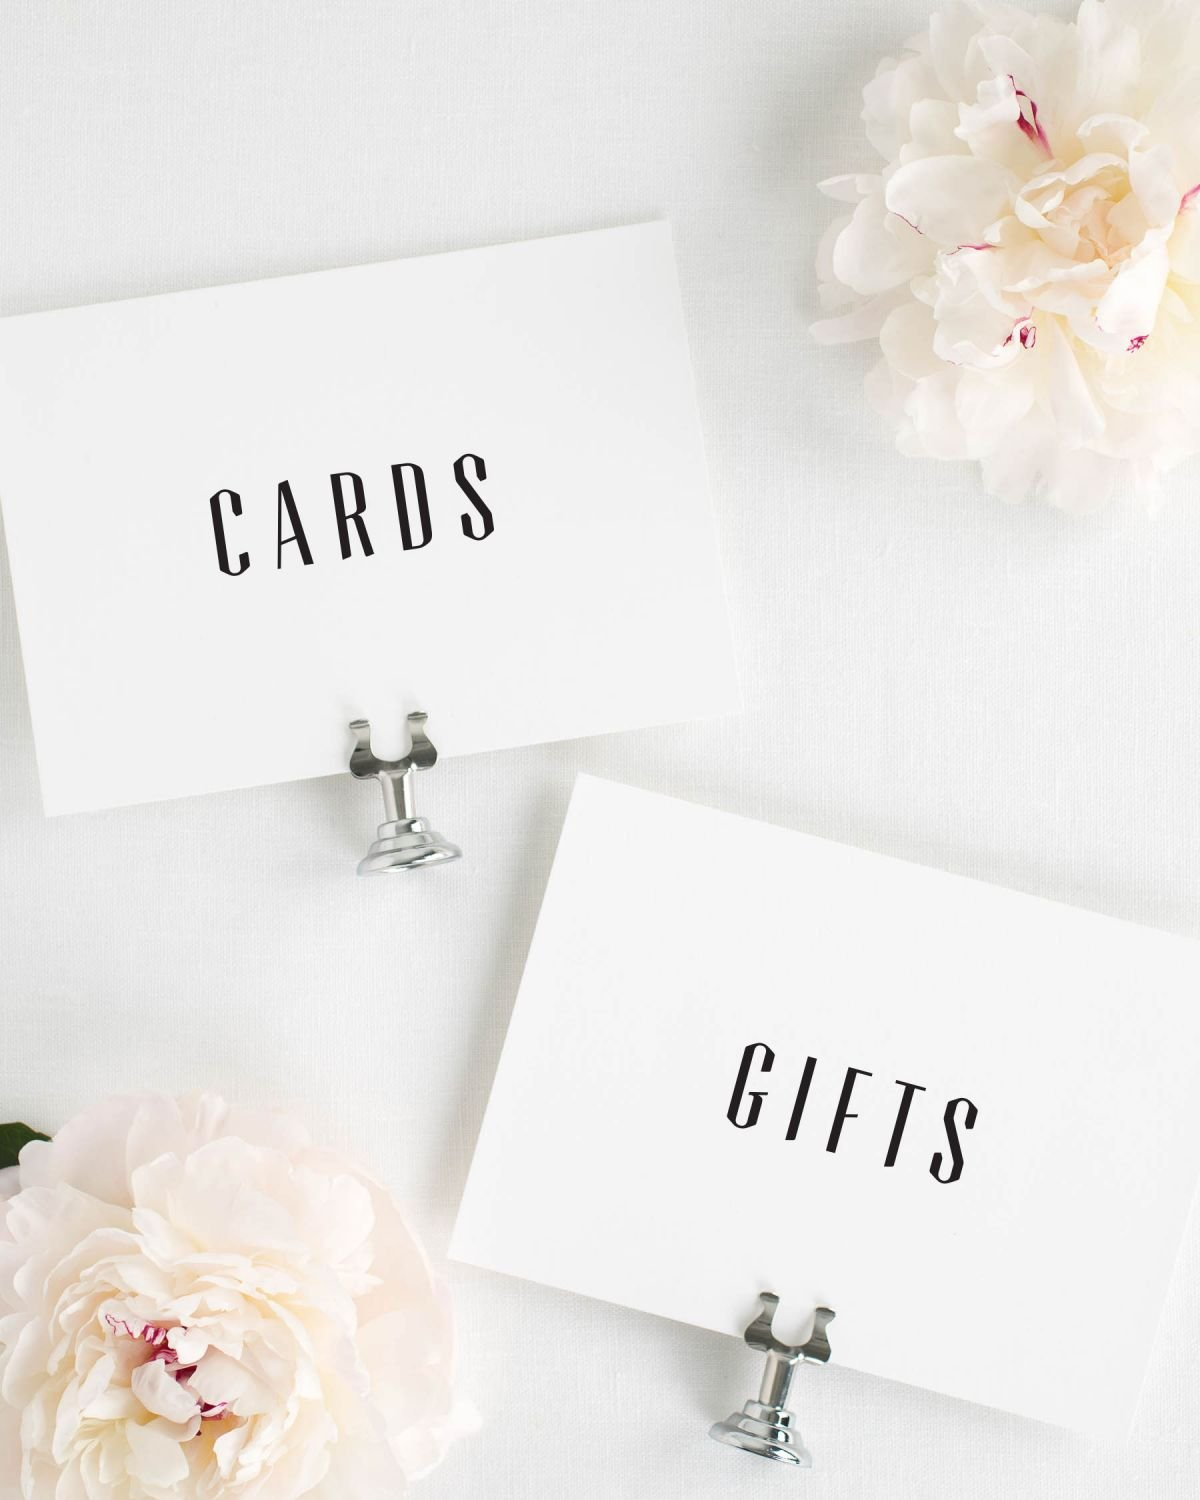 Gifts and Cards Signs for a Wedding